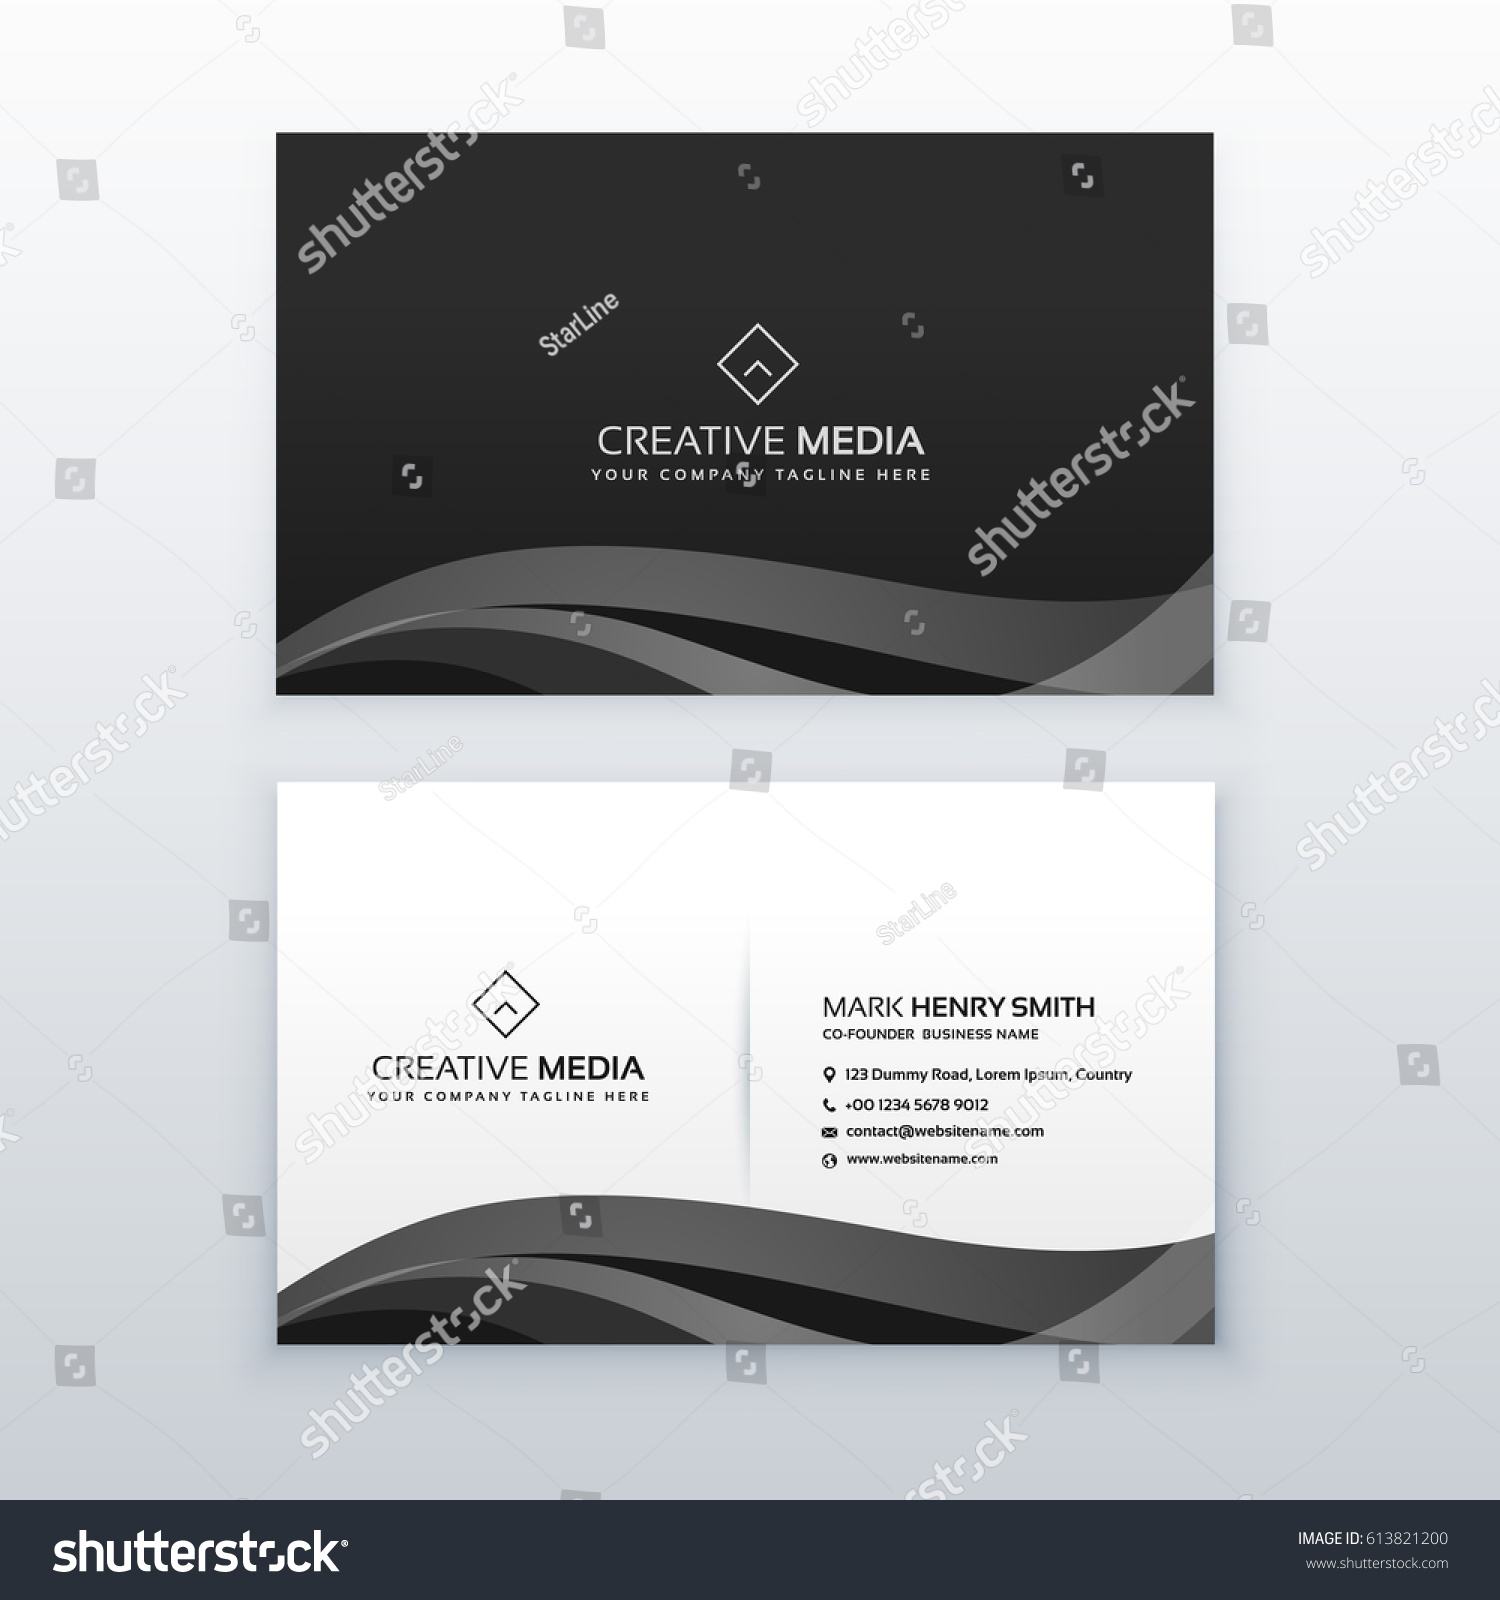 Modern Professional Dark Business Card Design Stock Vector 613821200 ...